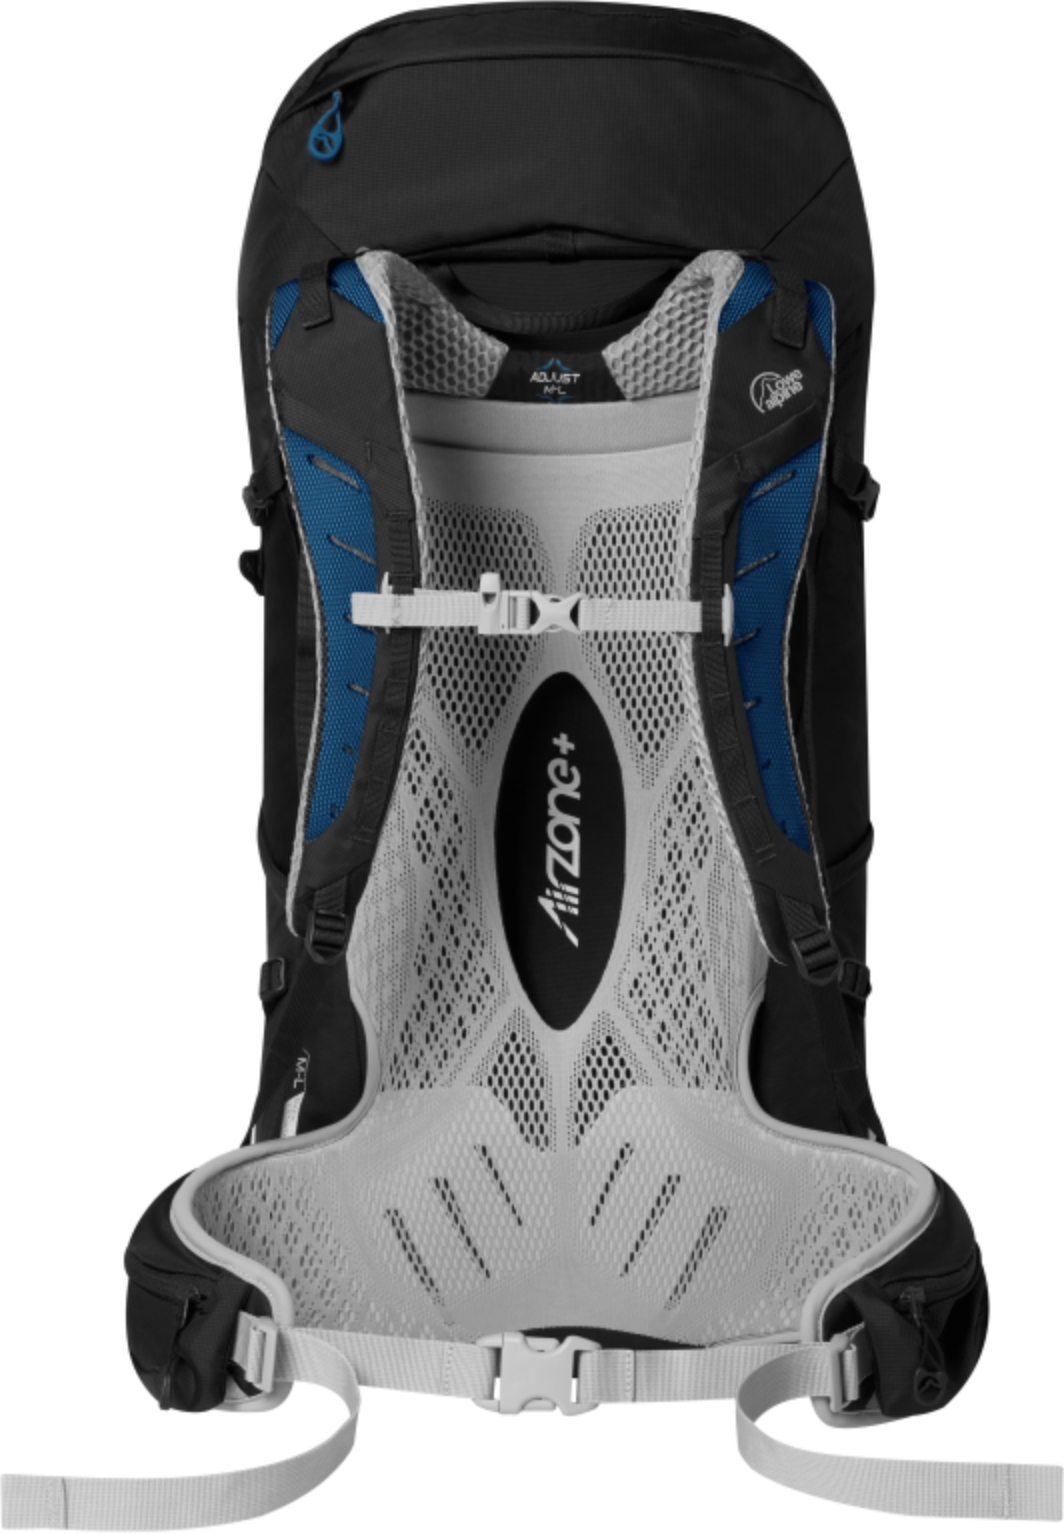 Lowe Alpine-AirZone Trek 45-55-Backpacking Pack-Gearaholic.com.sg